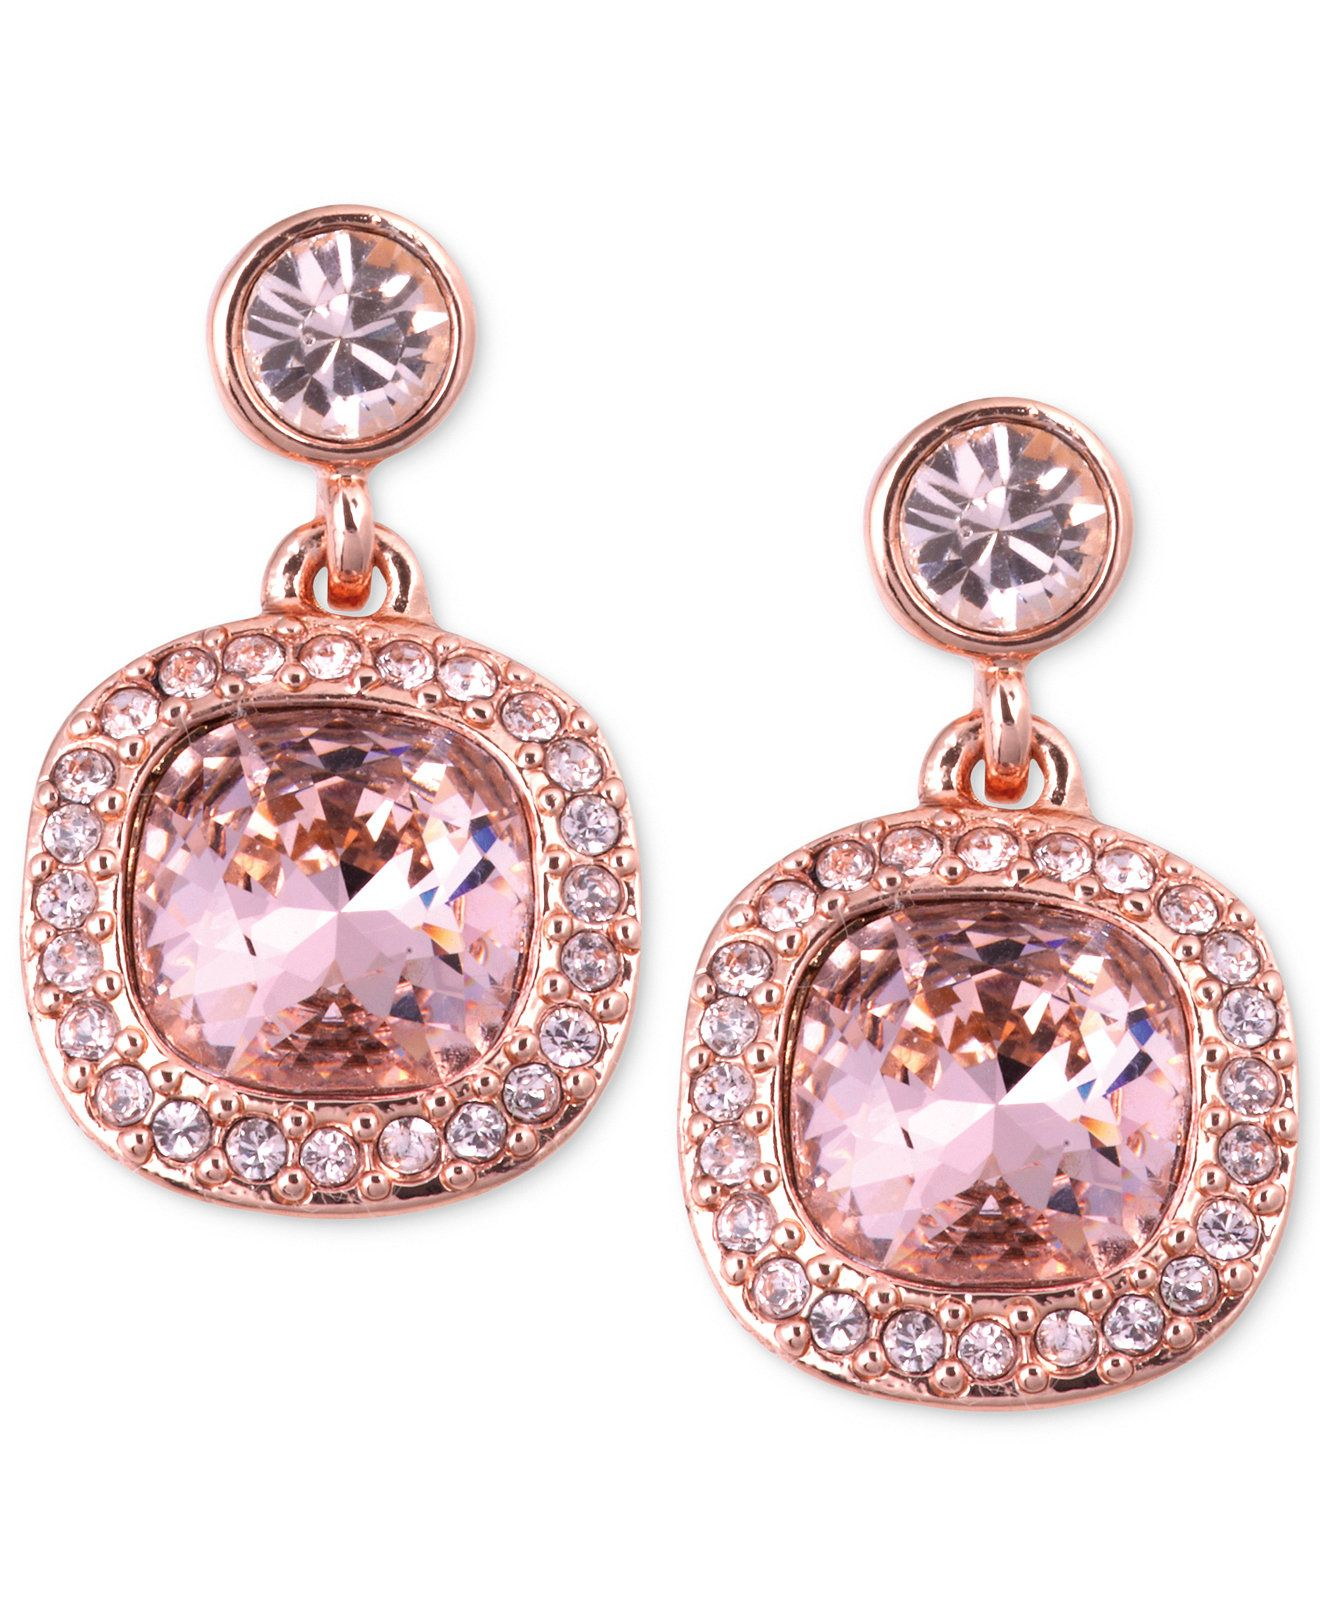 1f48667f5bead What bridesmaids wouldn t love these delightfully pink Givenchy earrings   Surprise your girls on the big day with this extra sparkly gift.